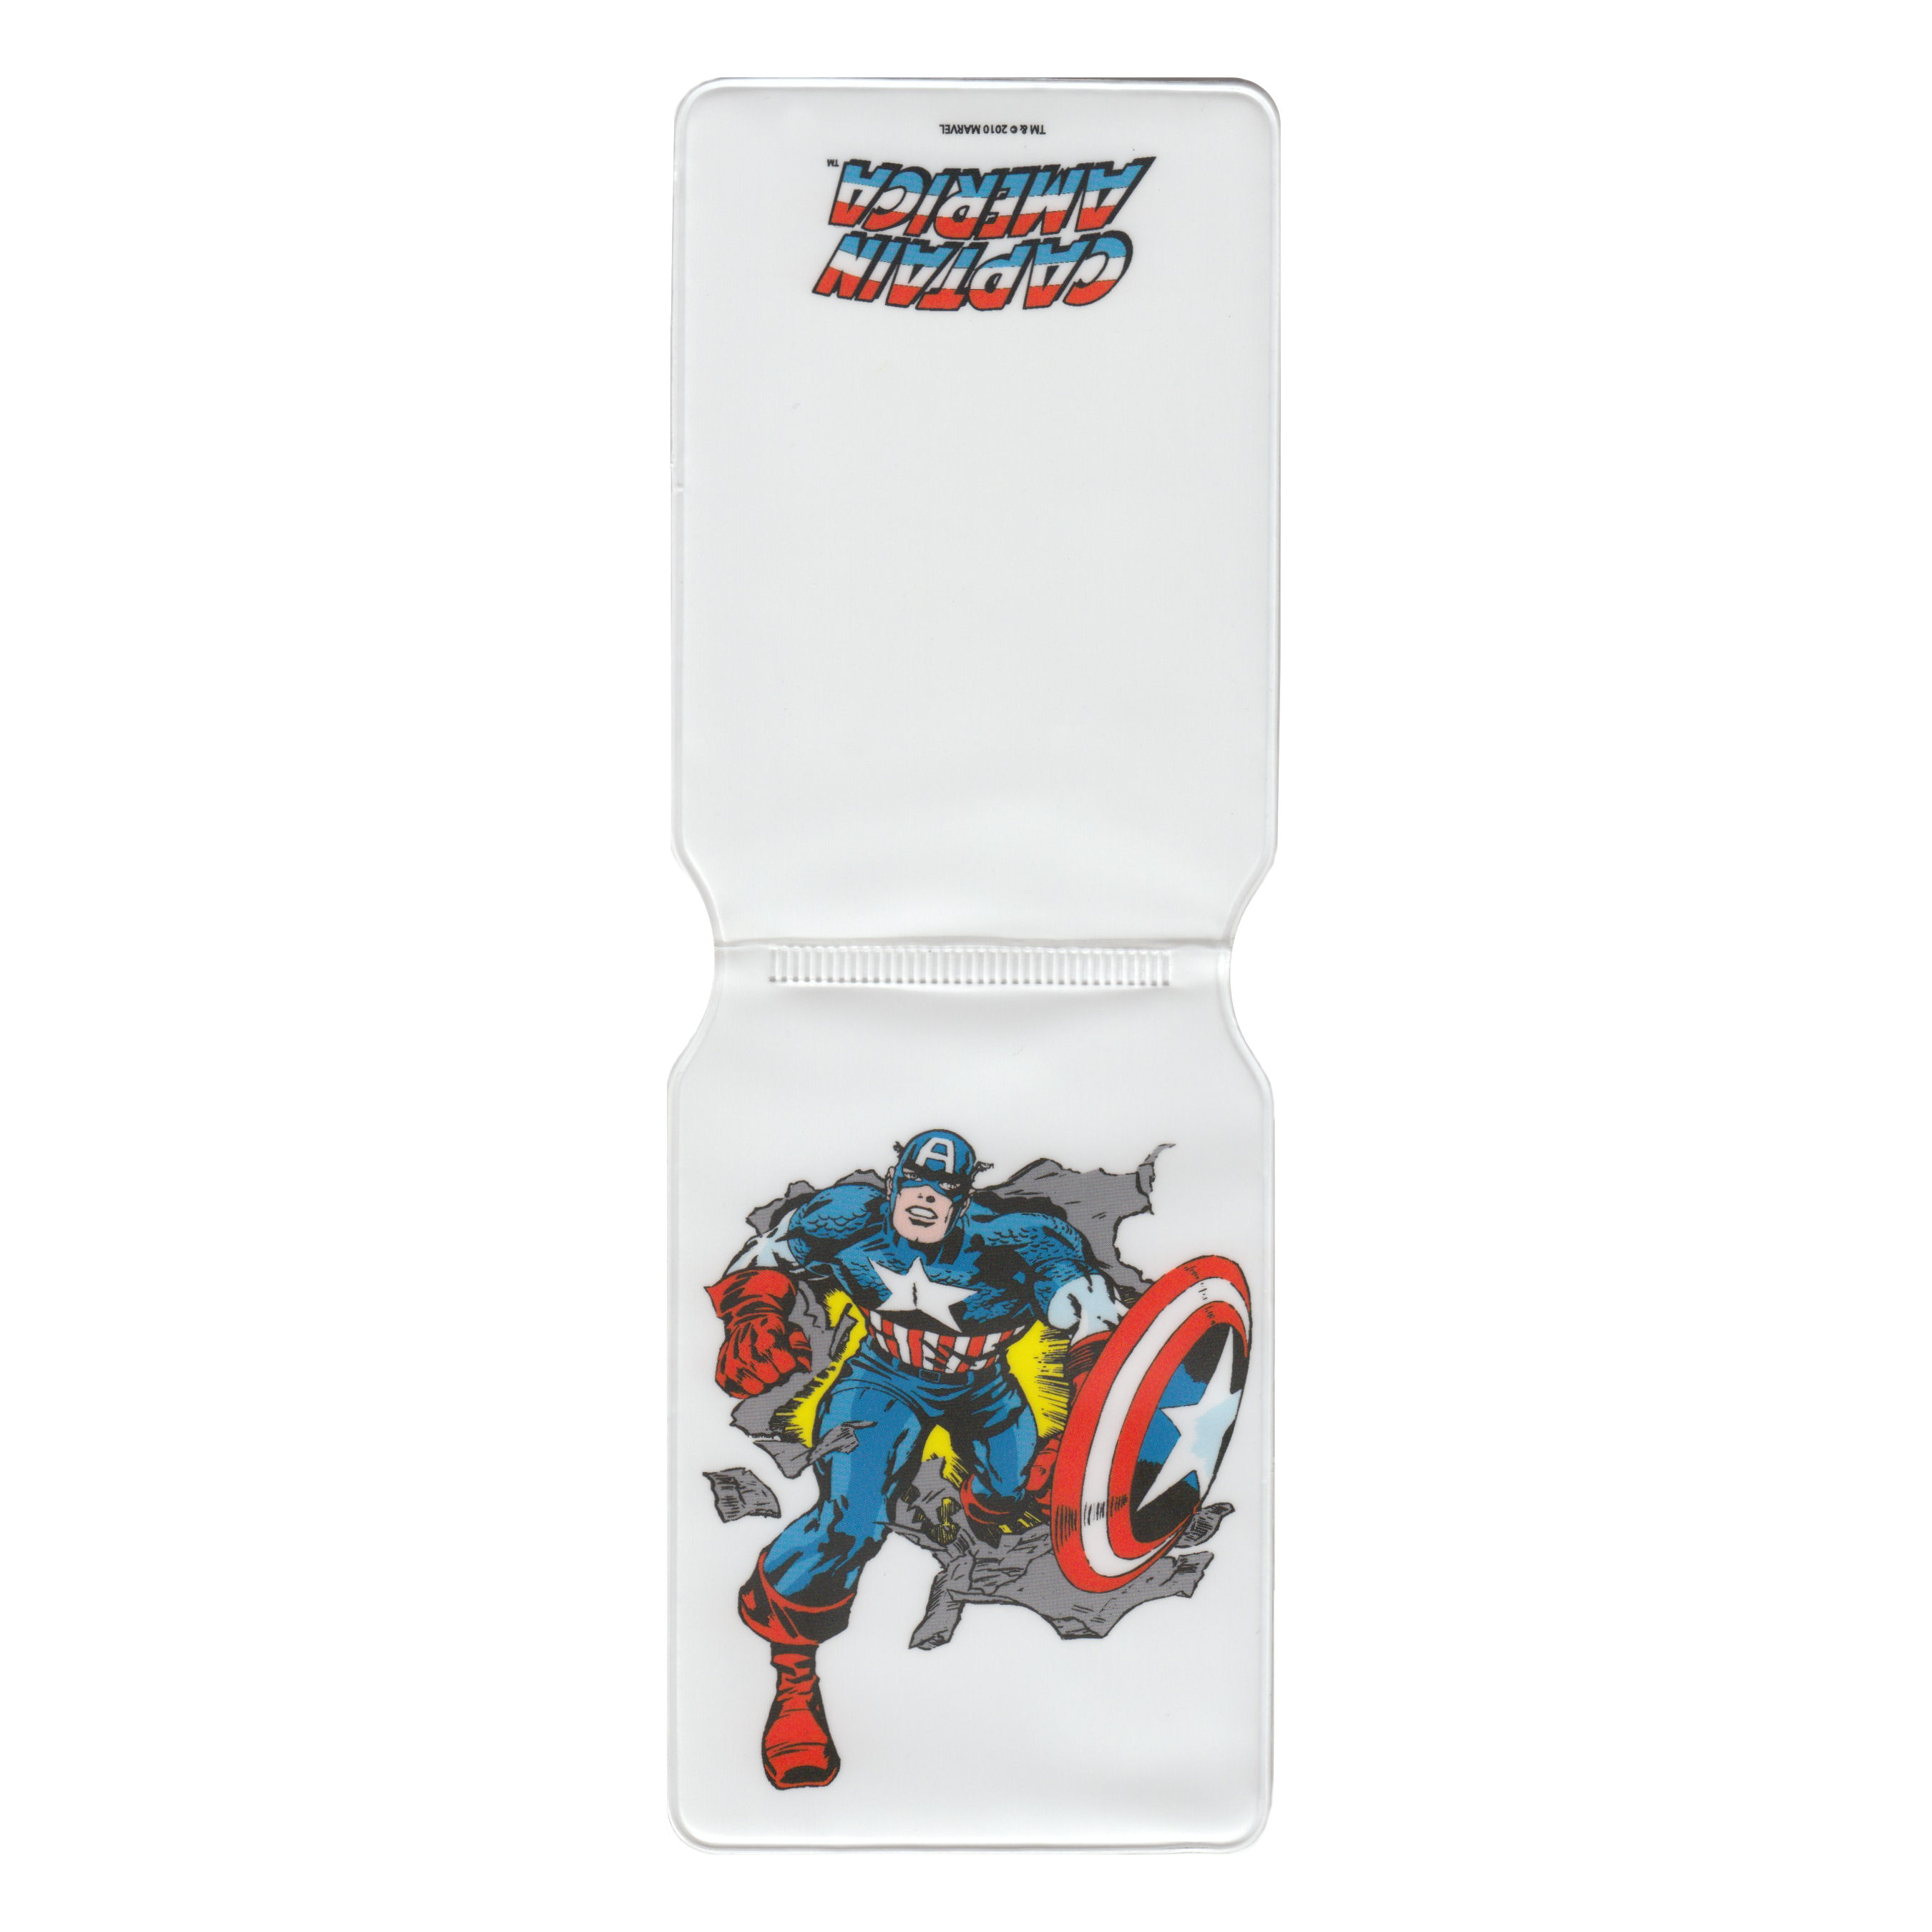 Captain America Issue 109 Classic Cover Travel/Oyster Card Holder